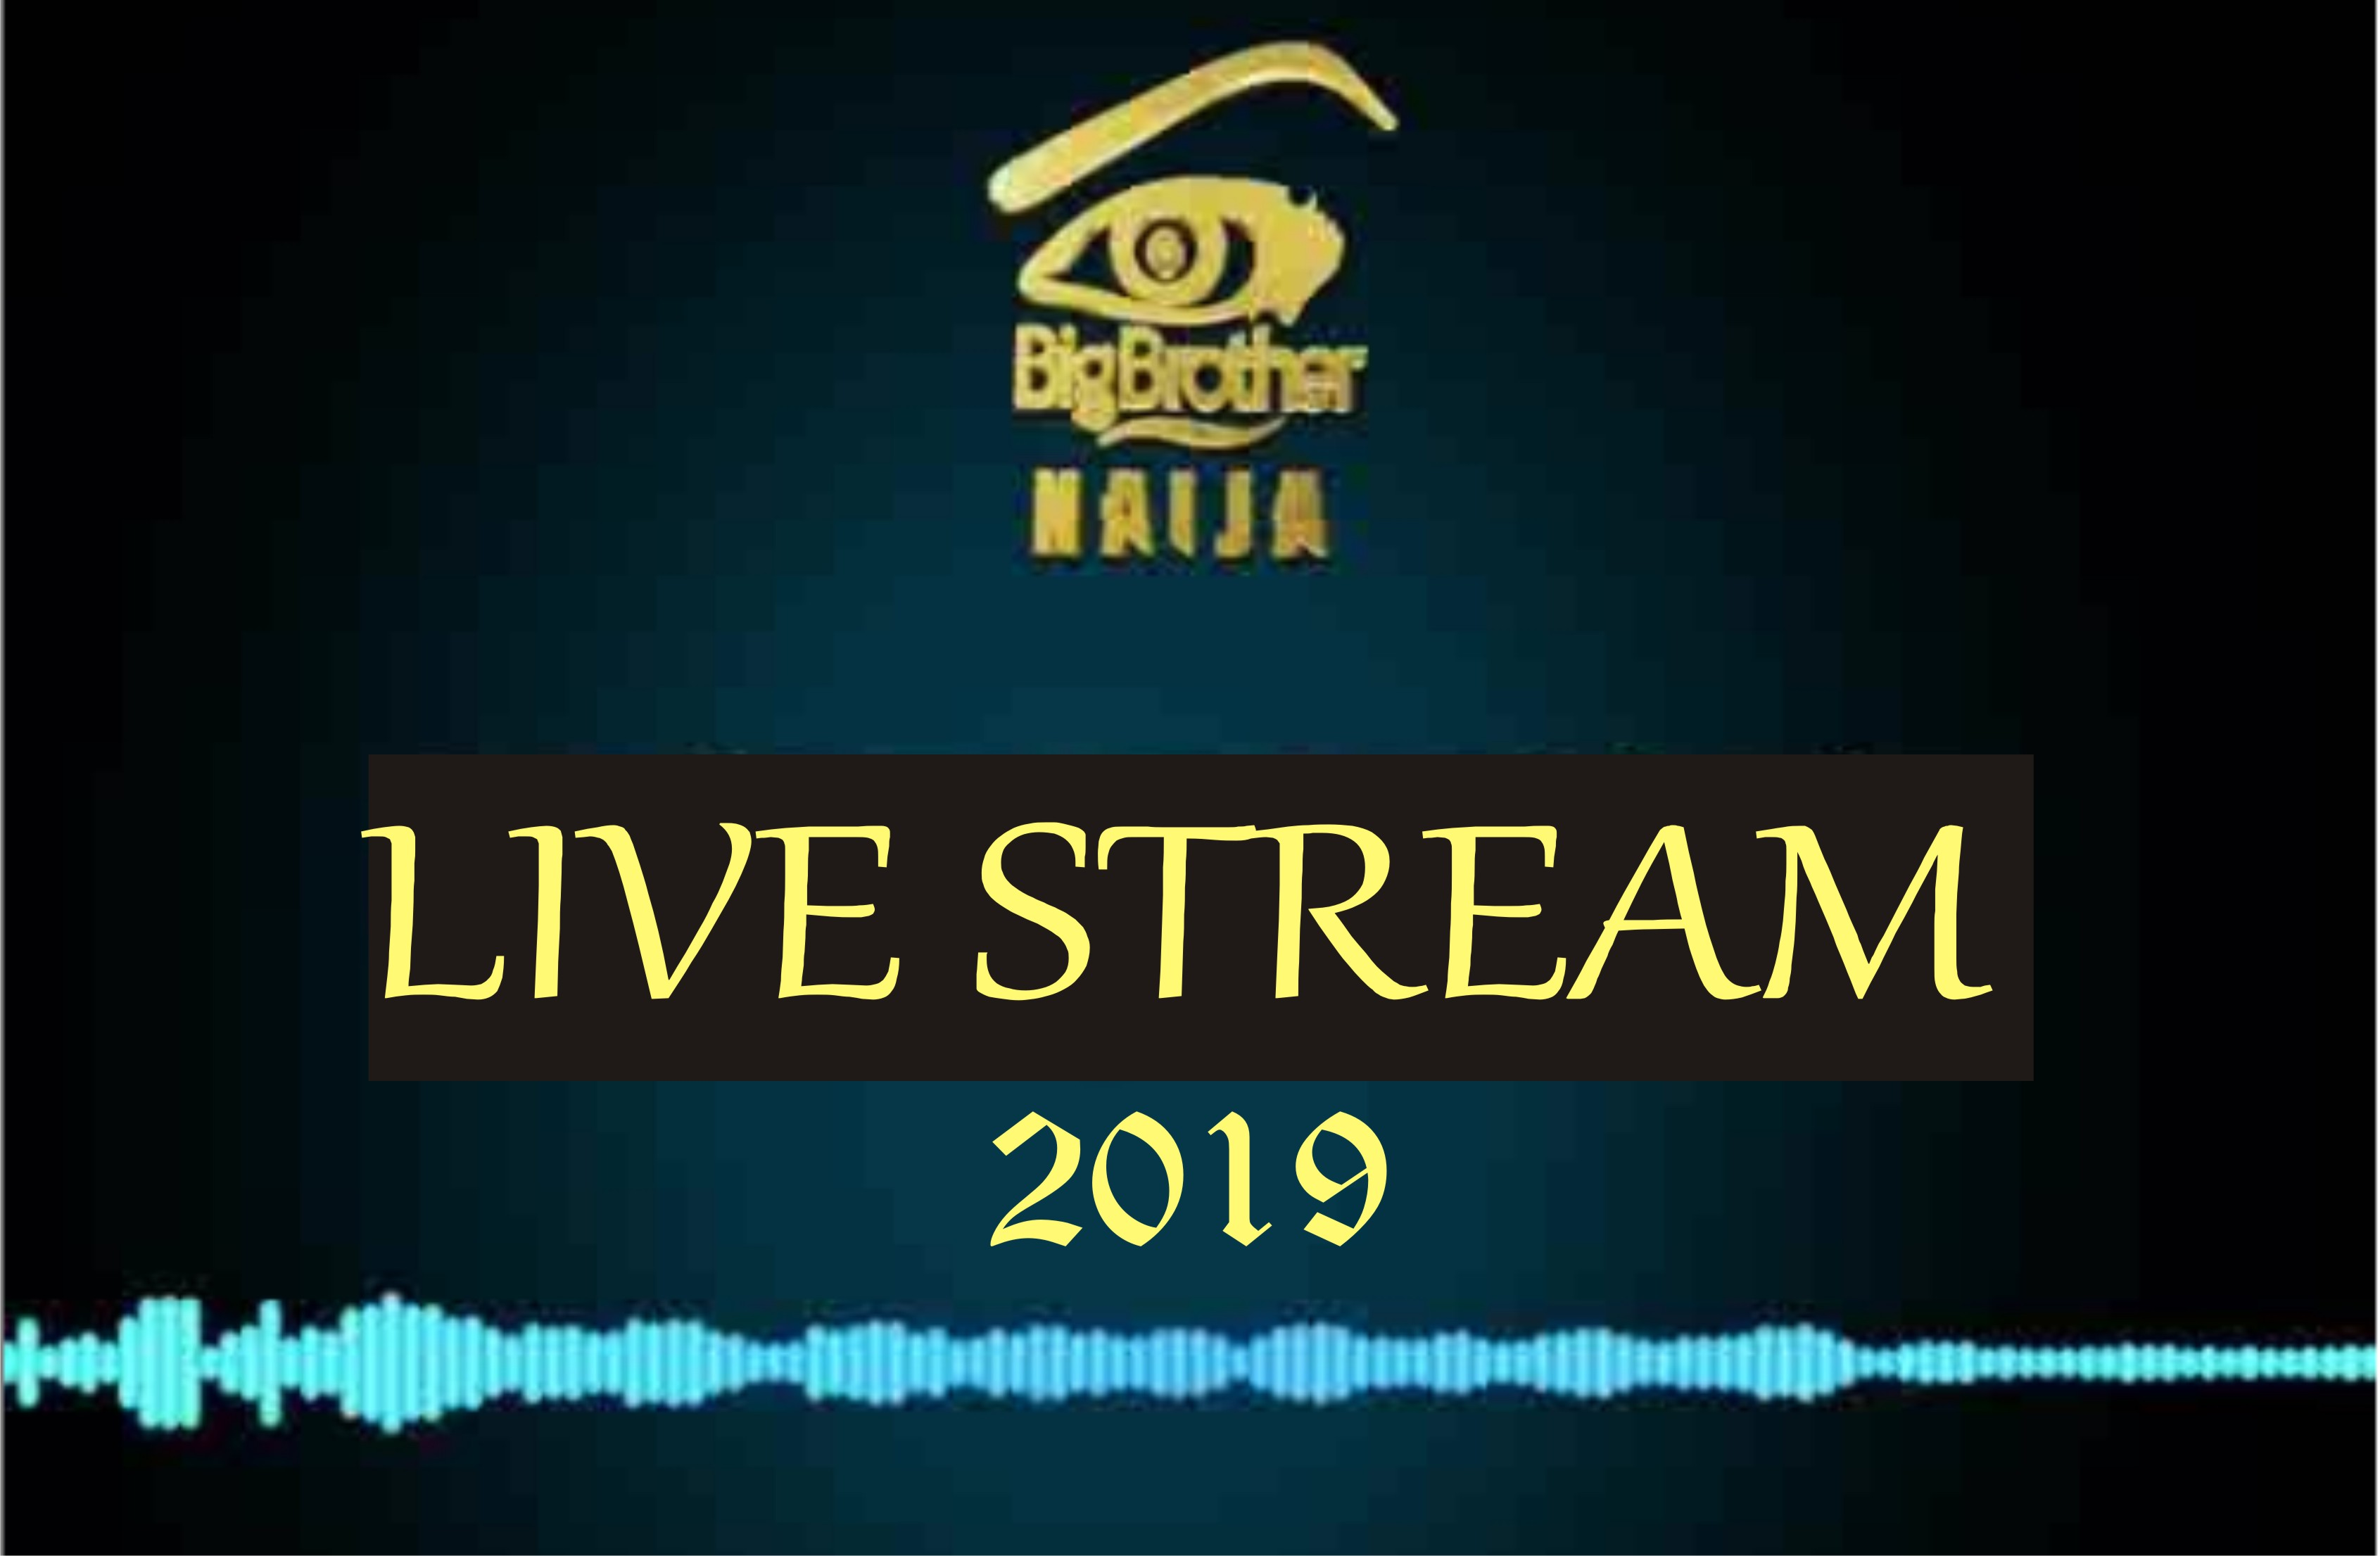 How to Watch BBNaija 2019 in United Kingdom, United States, China, France, Canada, etc.